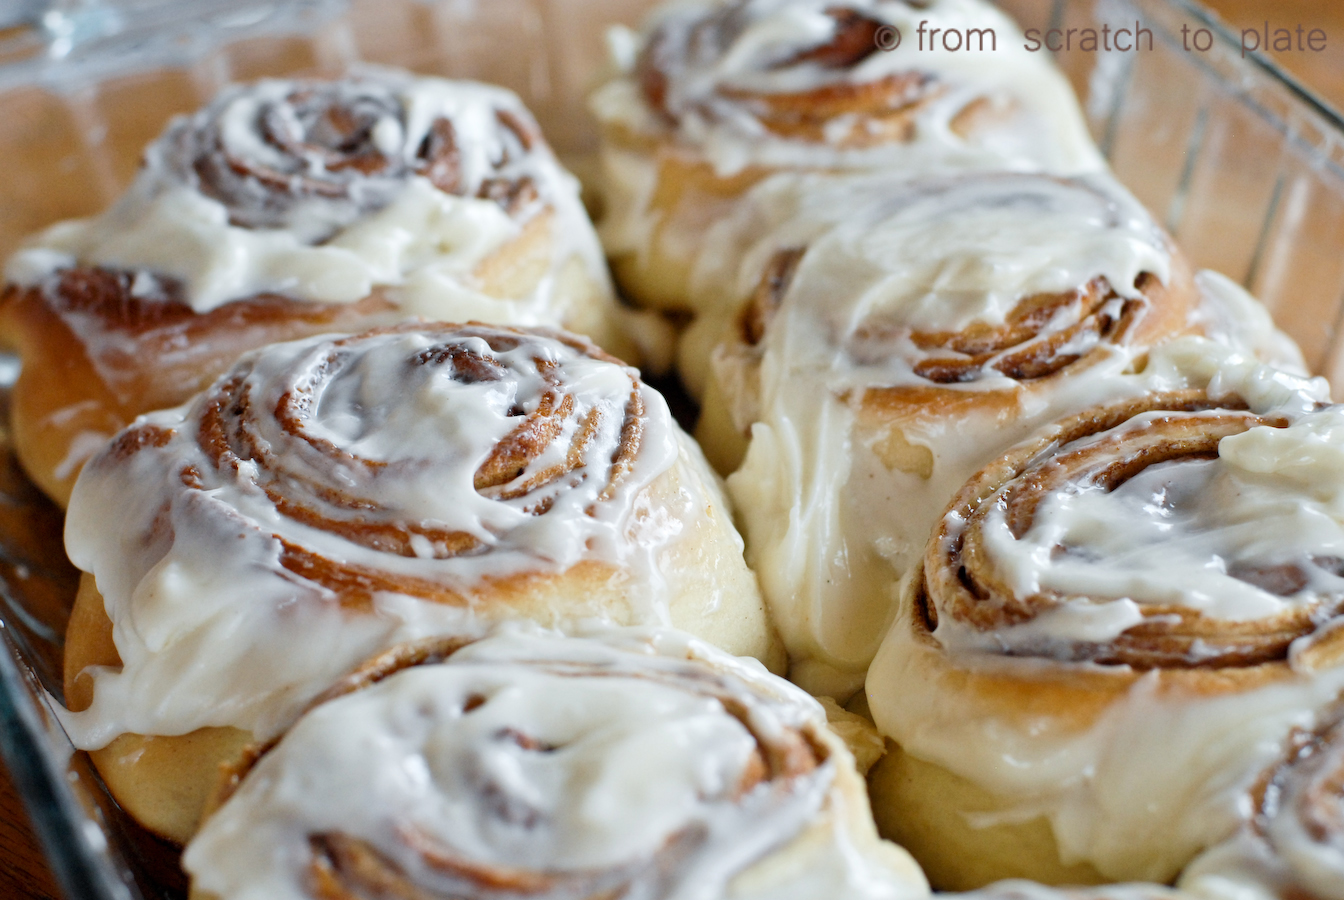 Gooey Homemade Cinnamon Rolls. Step-by-step instructions.